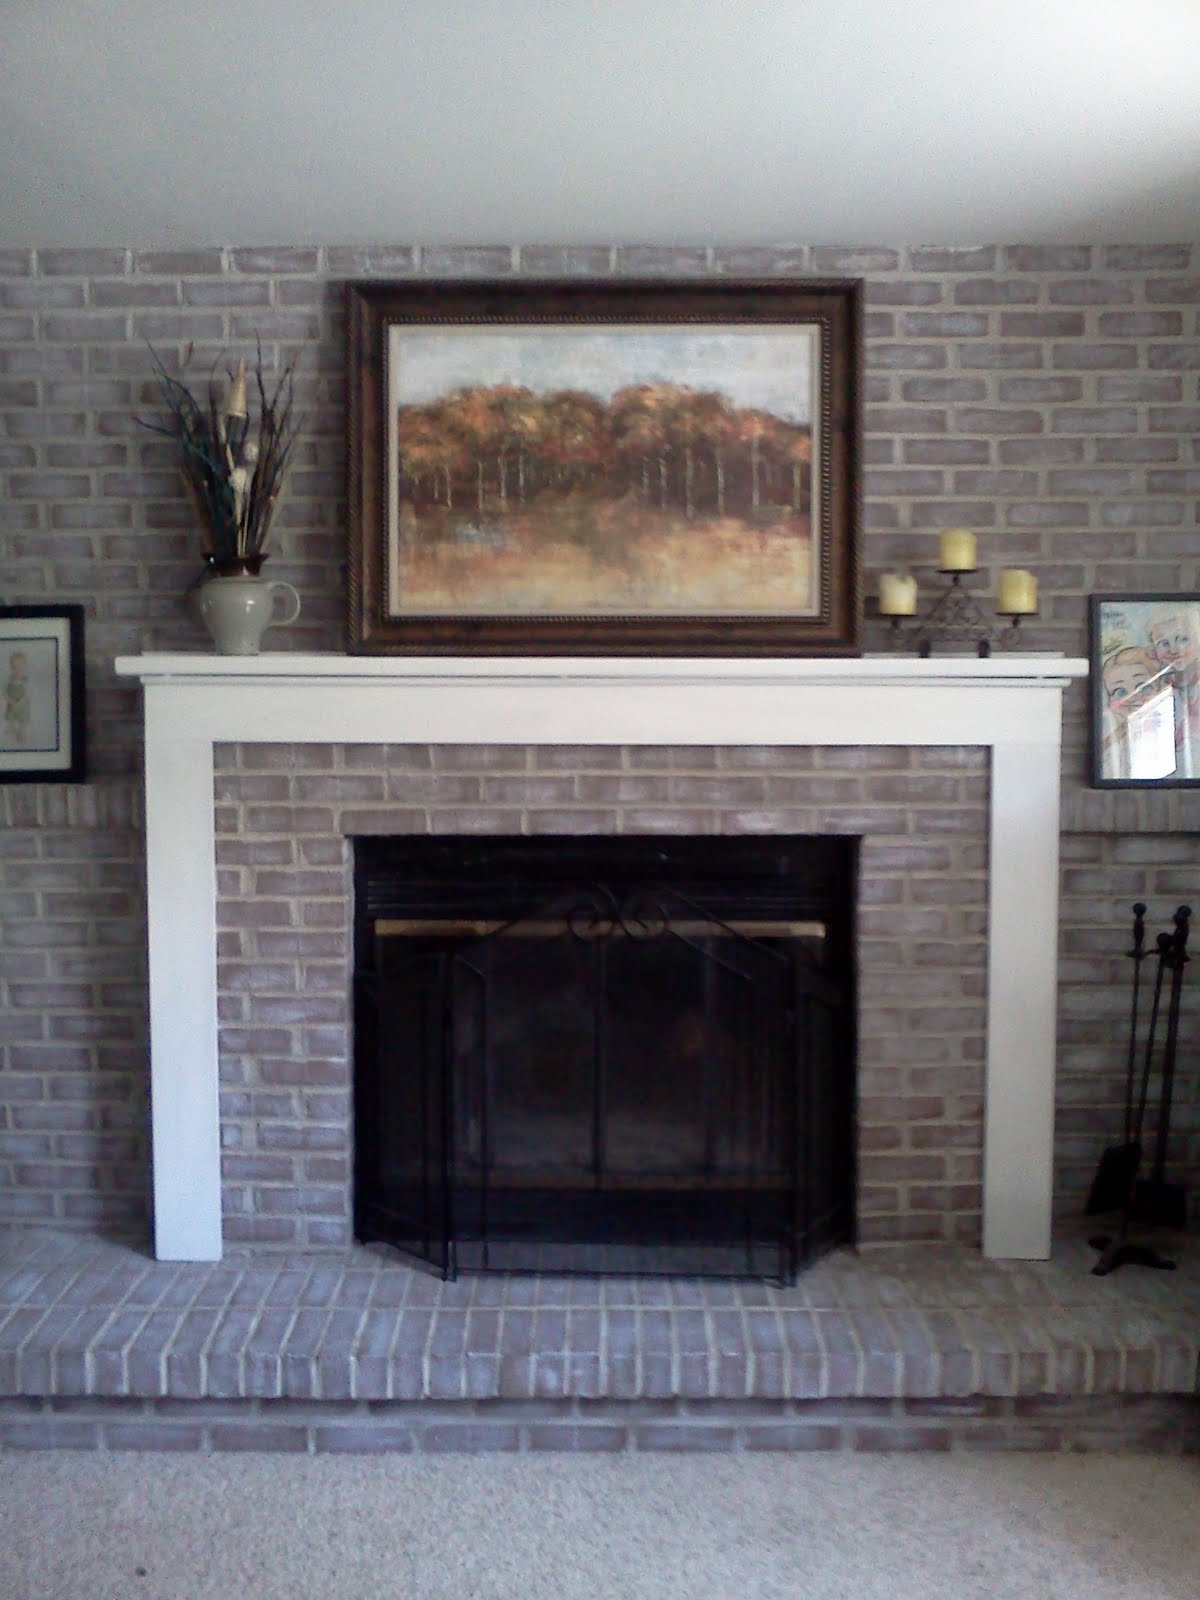 Diy decor brick fireplace makeover - Brick fireplace surrounds ideas ...